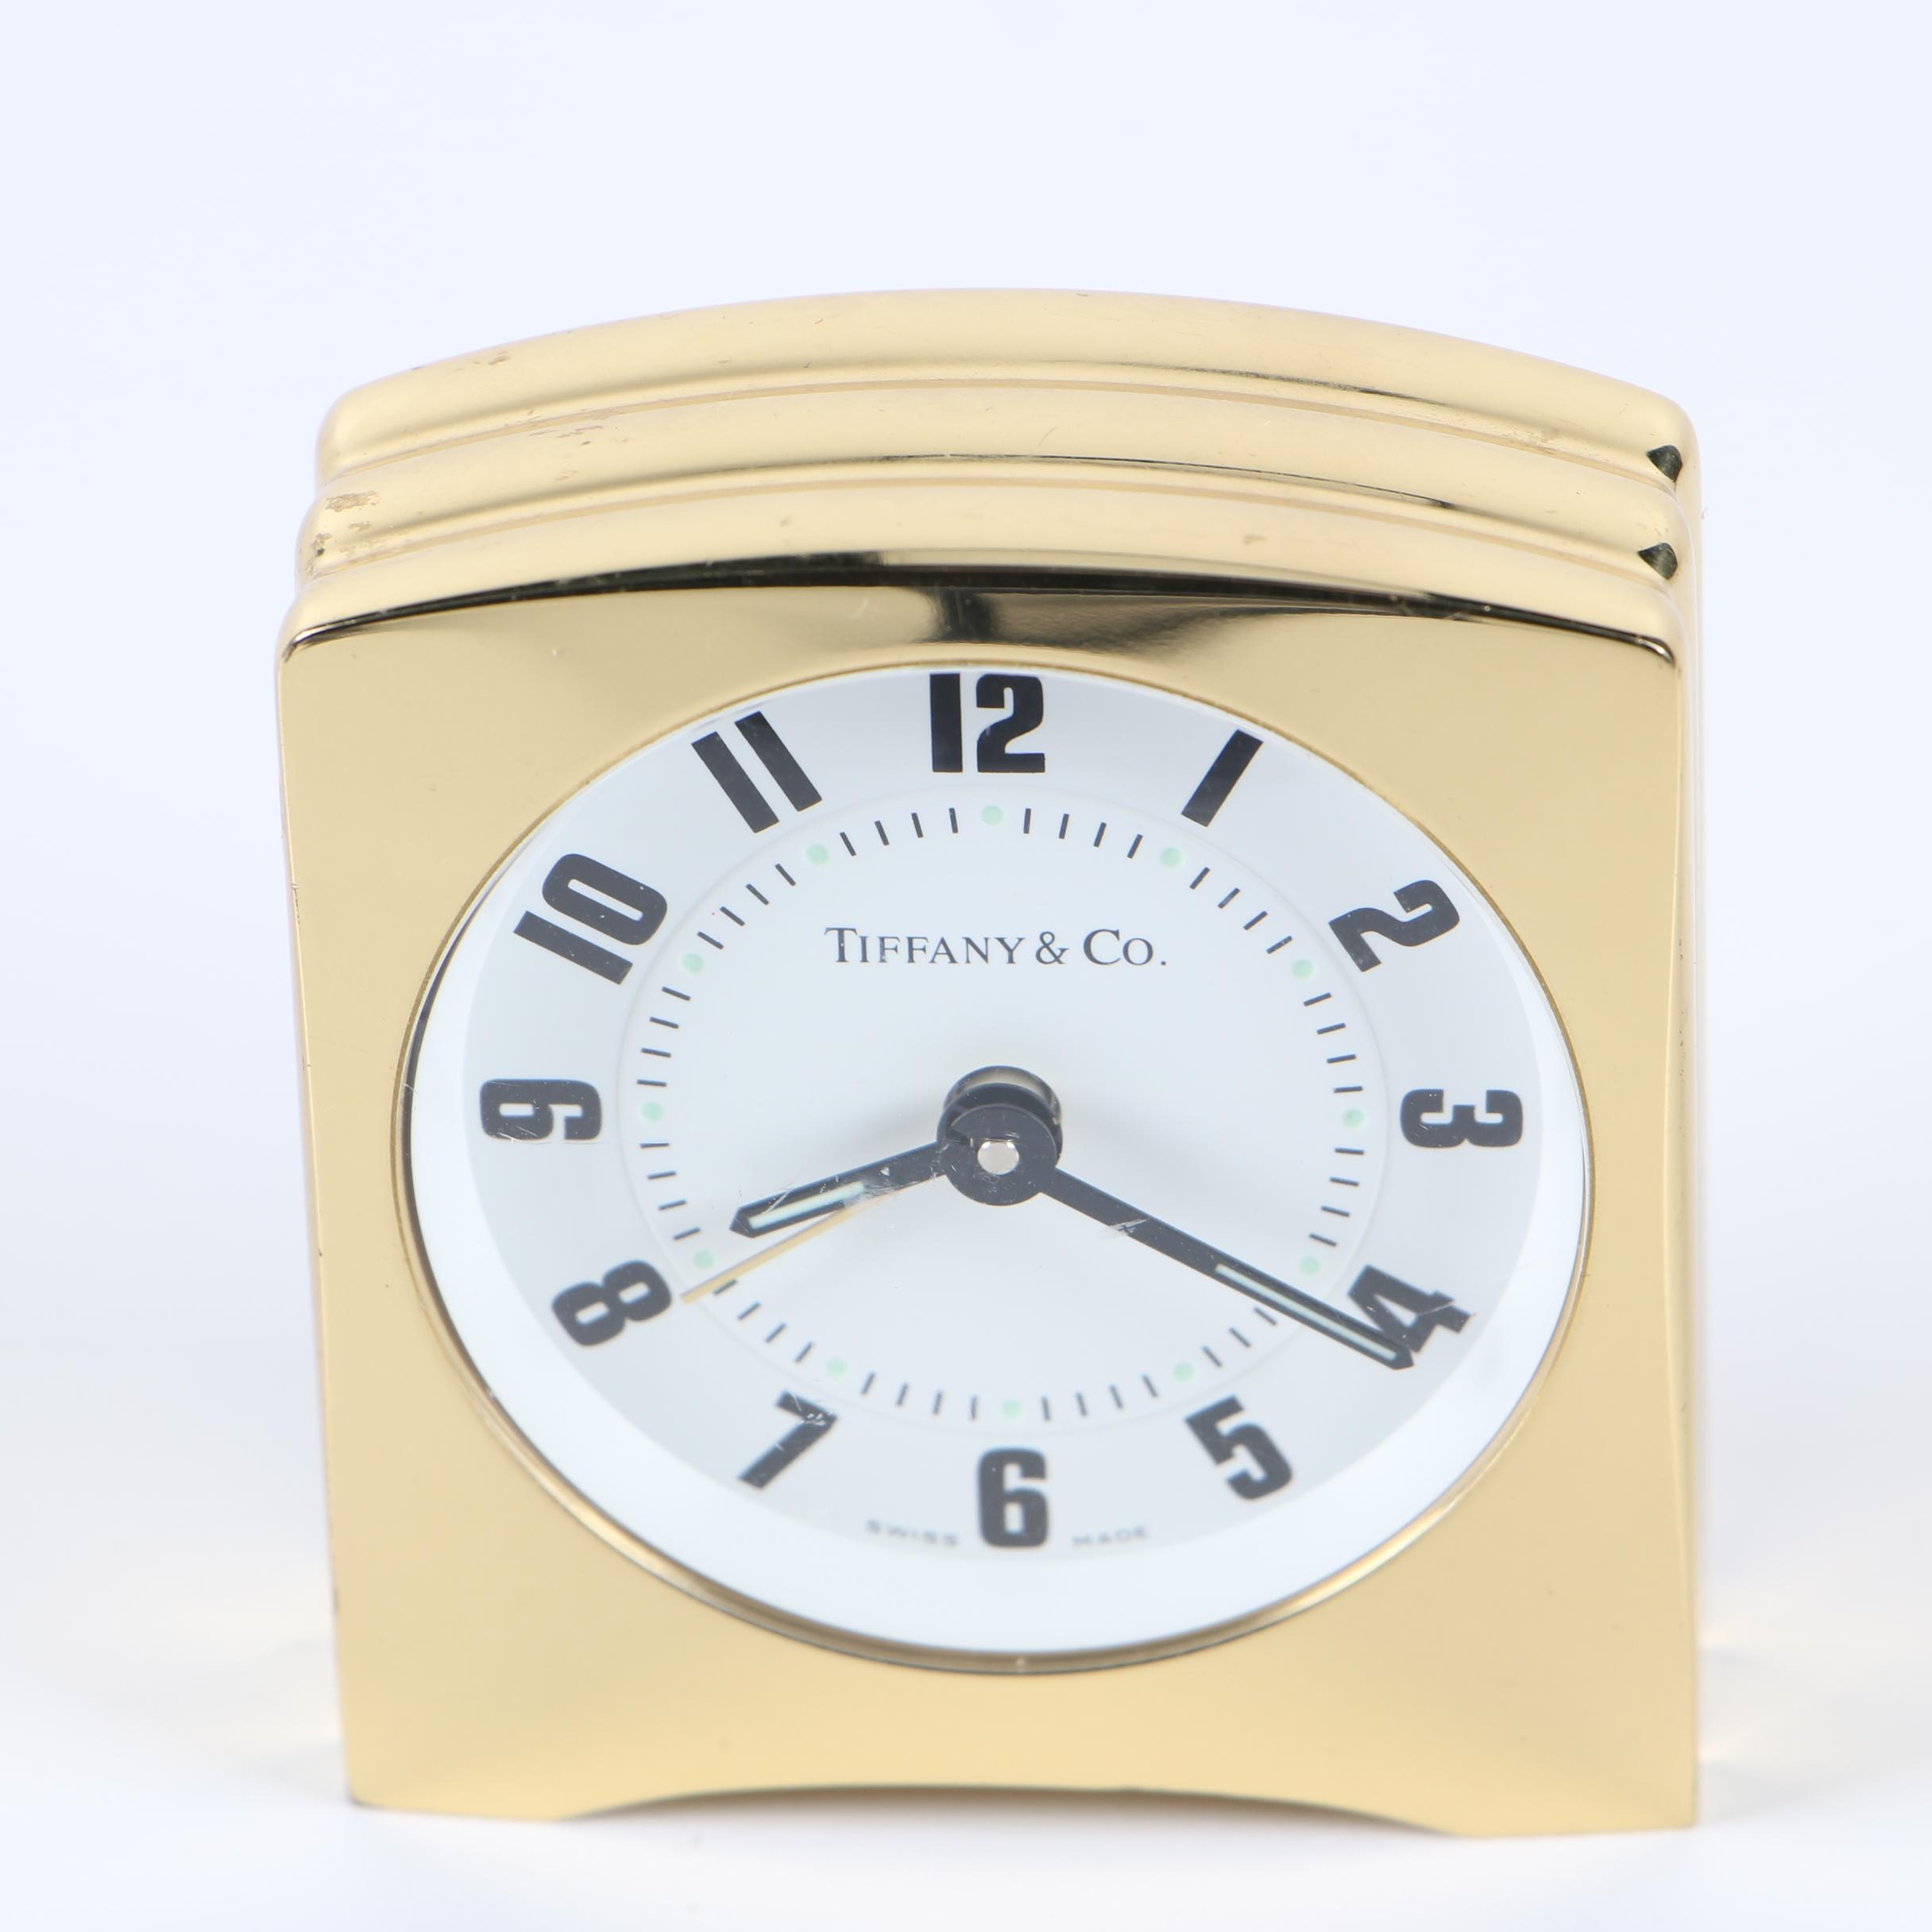 Tiffany & Co. Swiss Made Gold Tone Alarm Clock